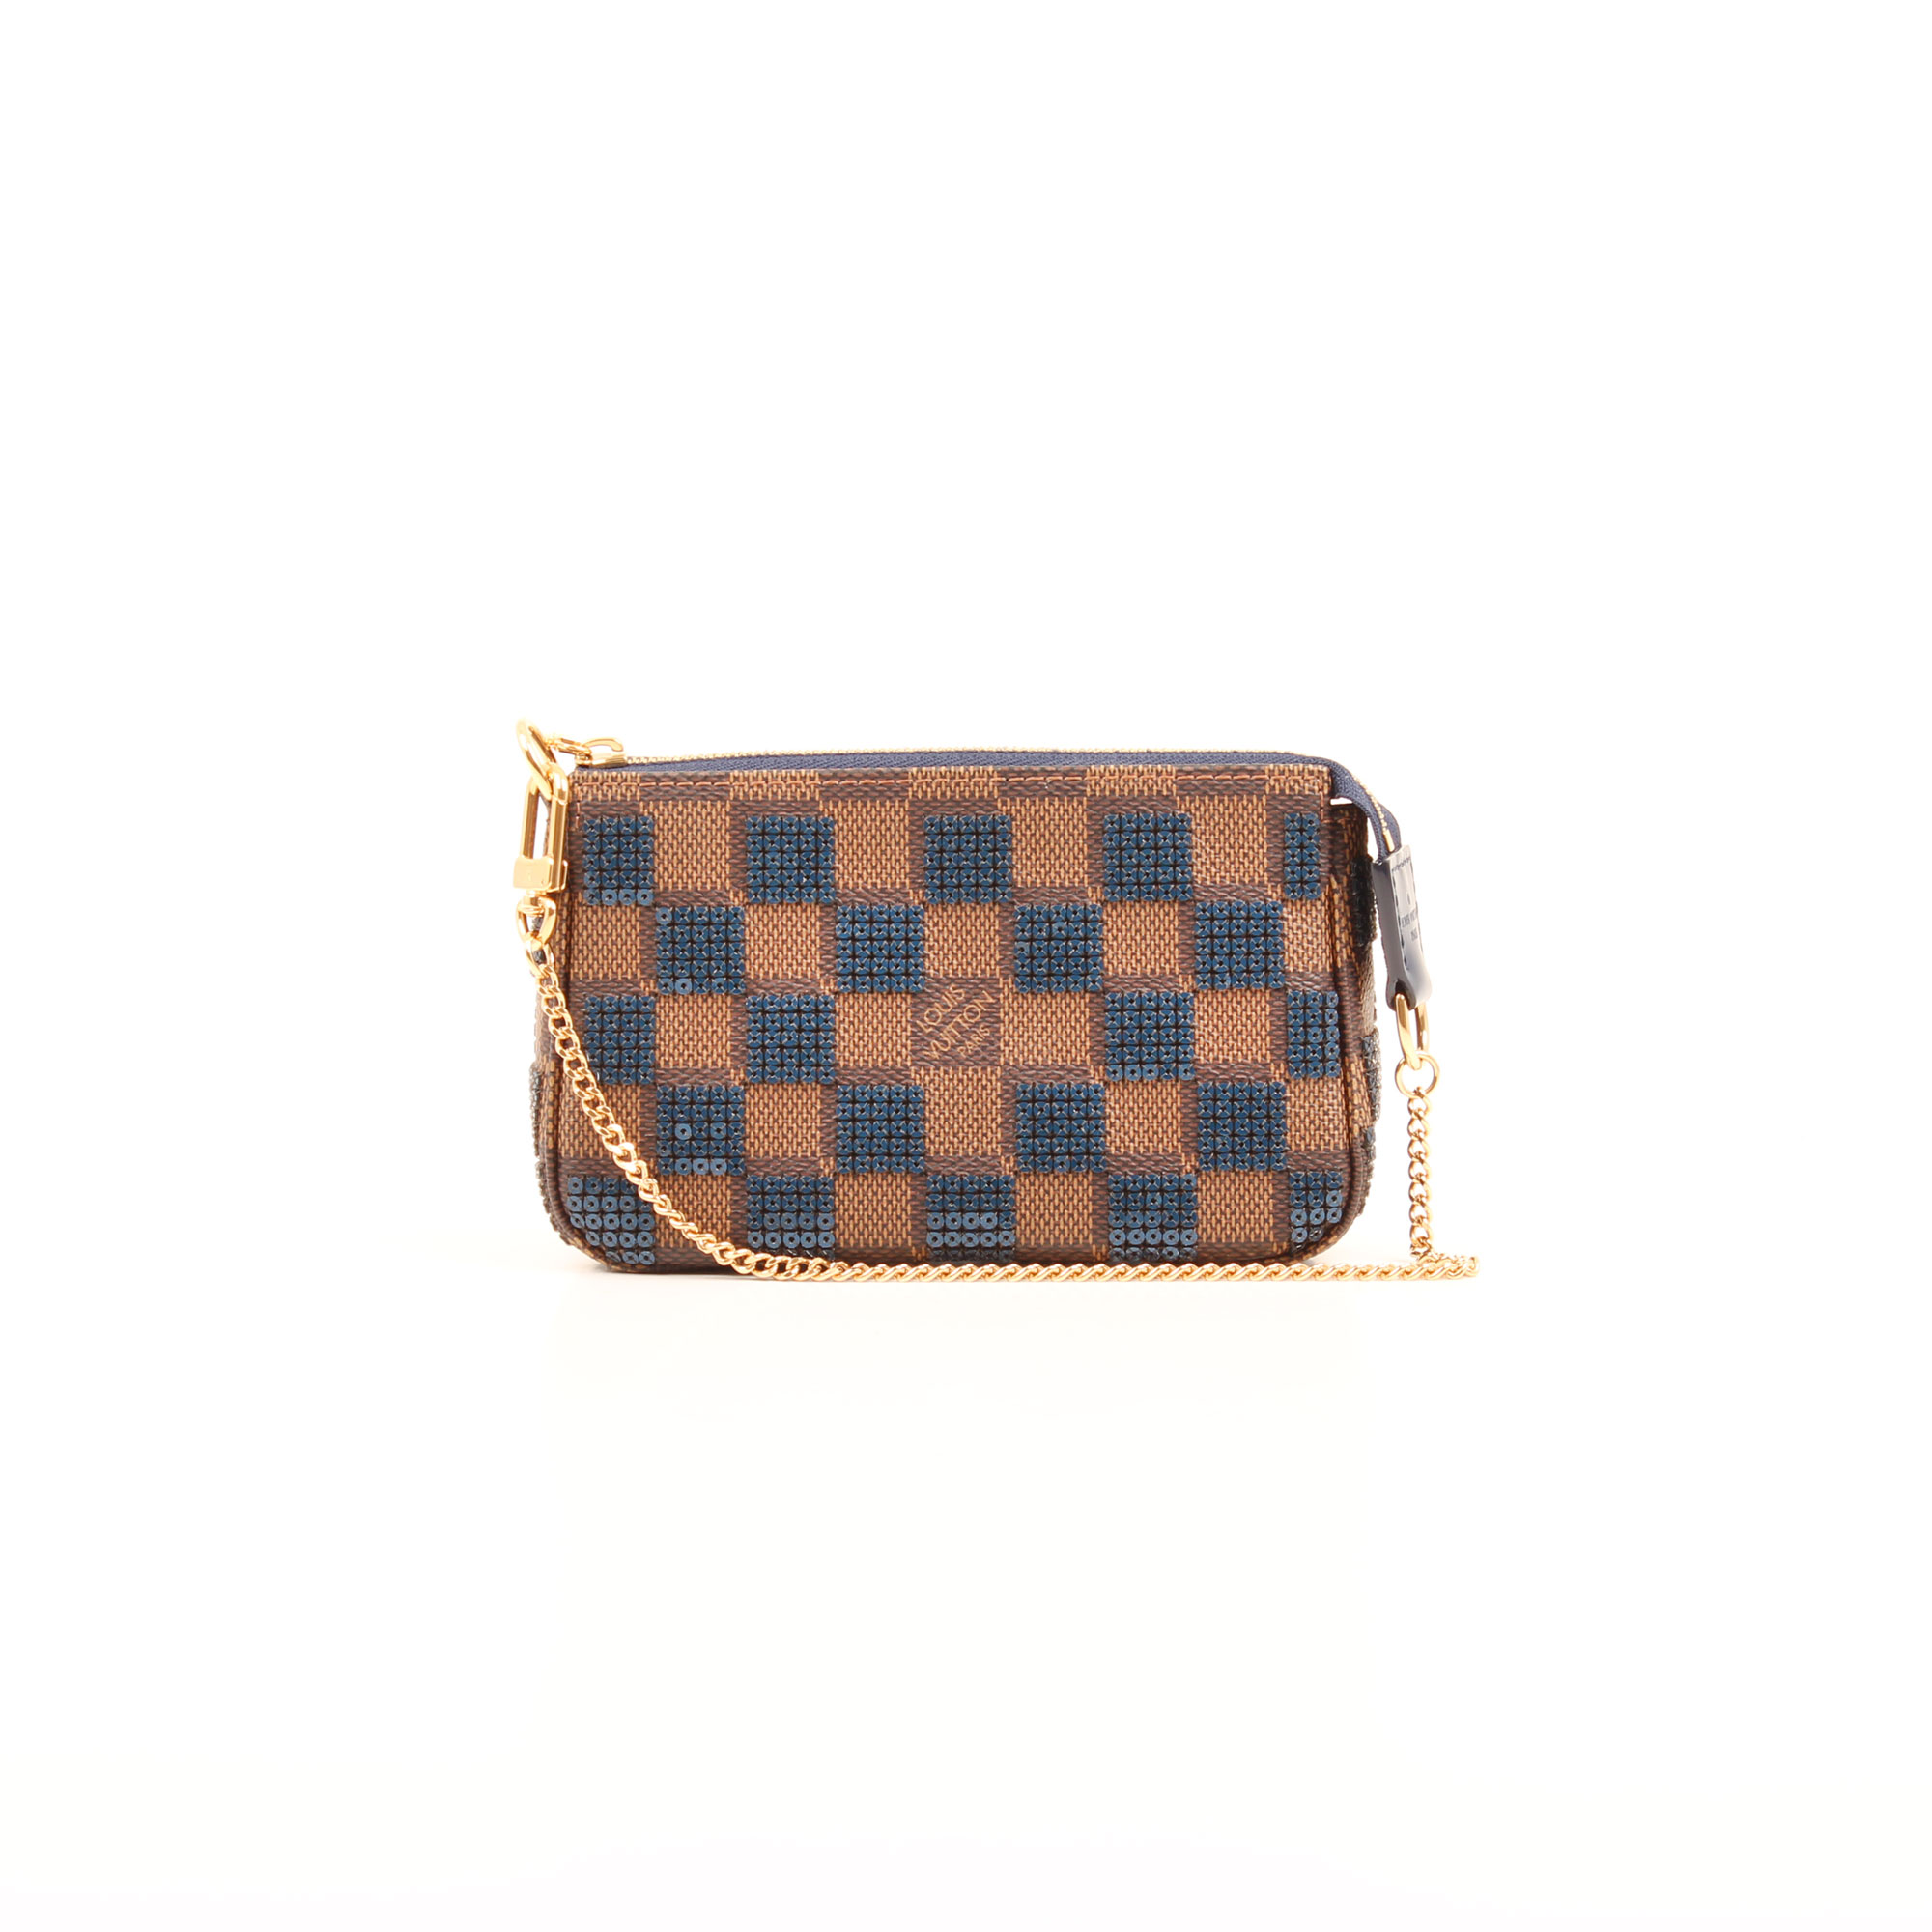 Front image of louis vuitton damier paillettes mini accessories pochette